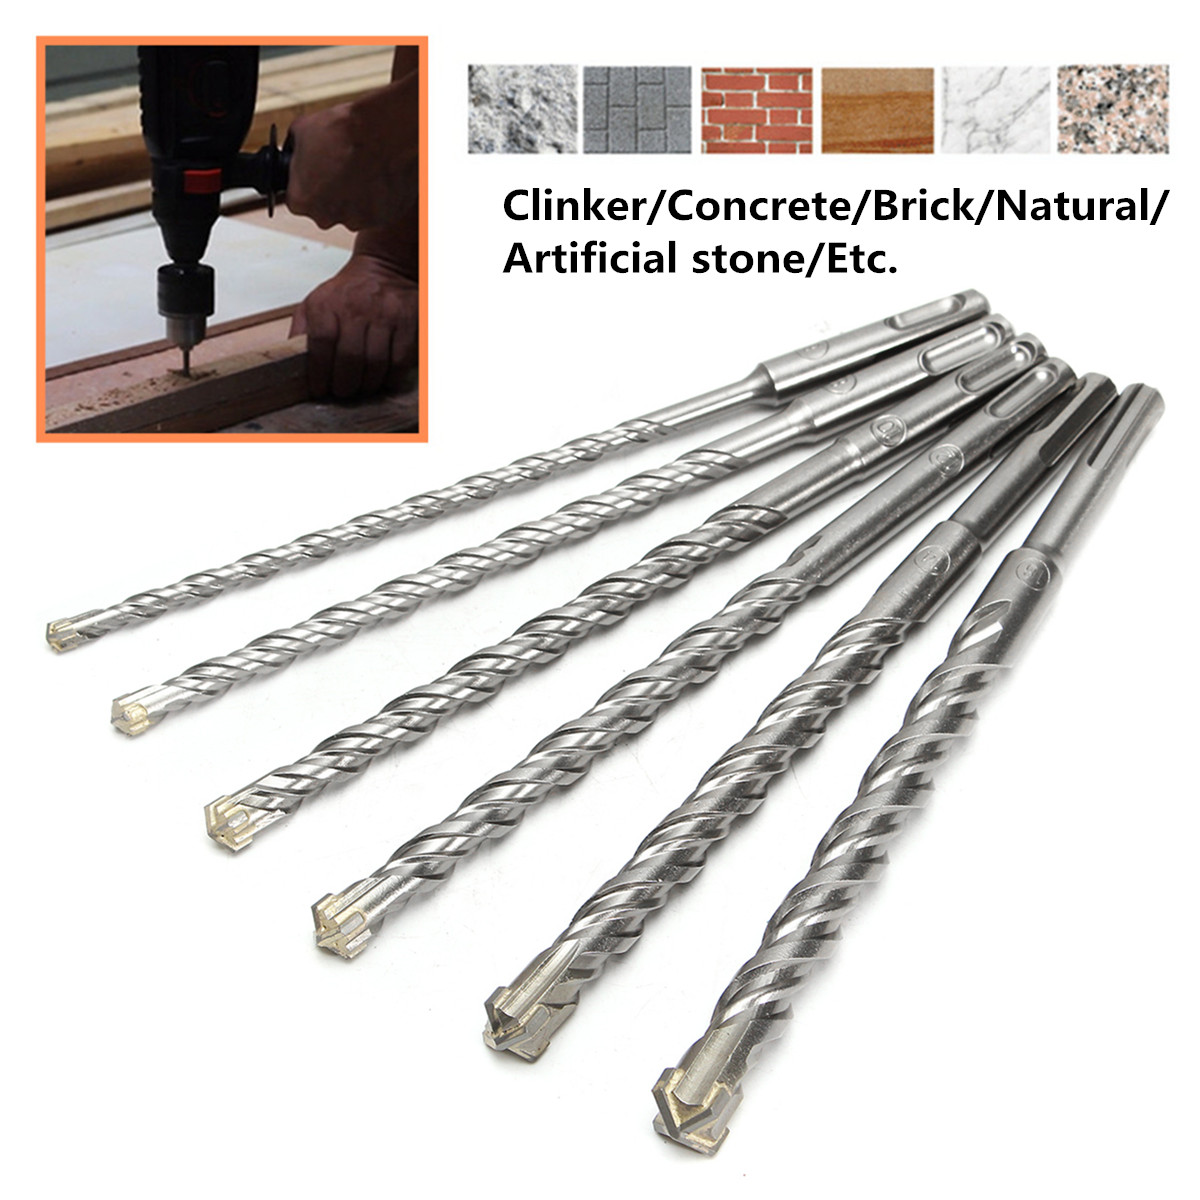 26cm Drill Bits 6/8/10/12/14/16mm For Electric Hammer Polisher Bi-Metal Cross Type Tungsten Steel SDS Plus For Masonry Concrete